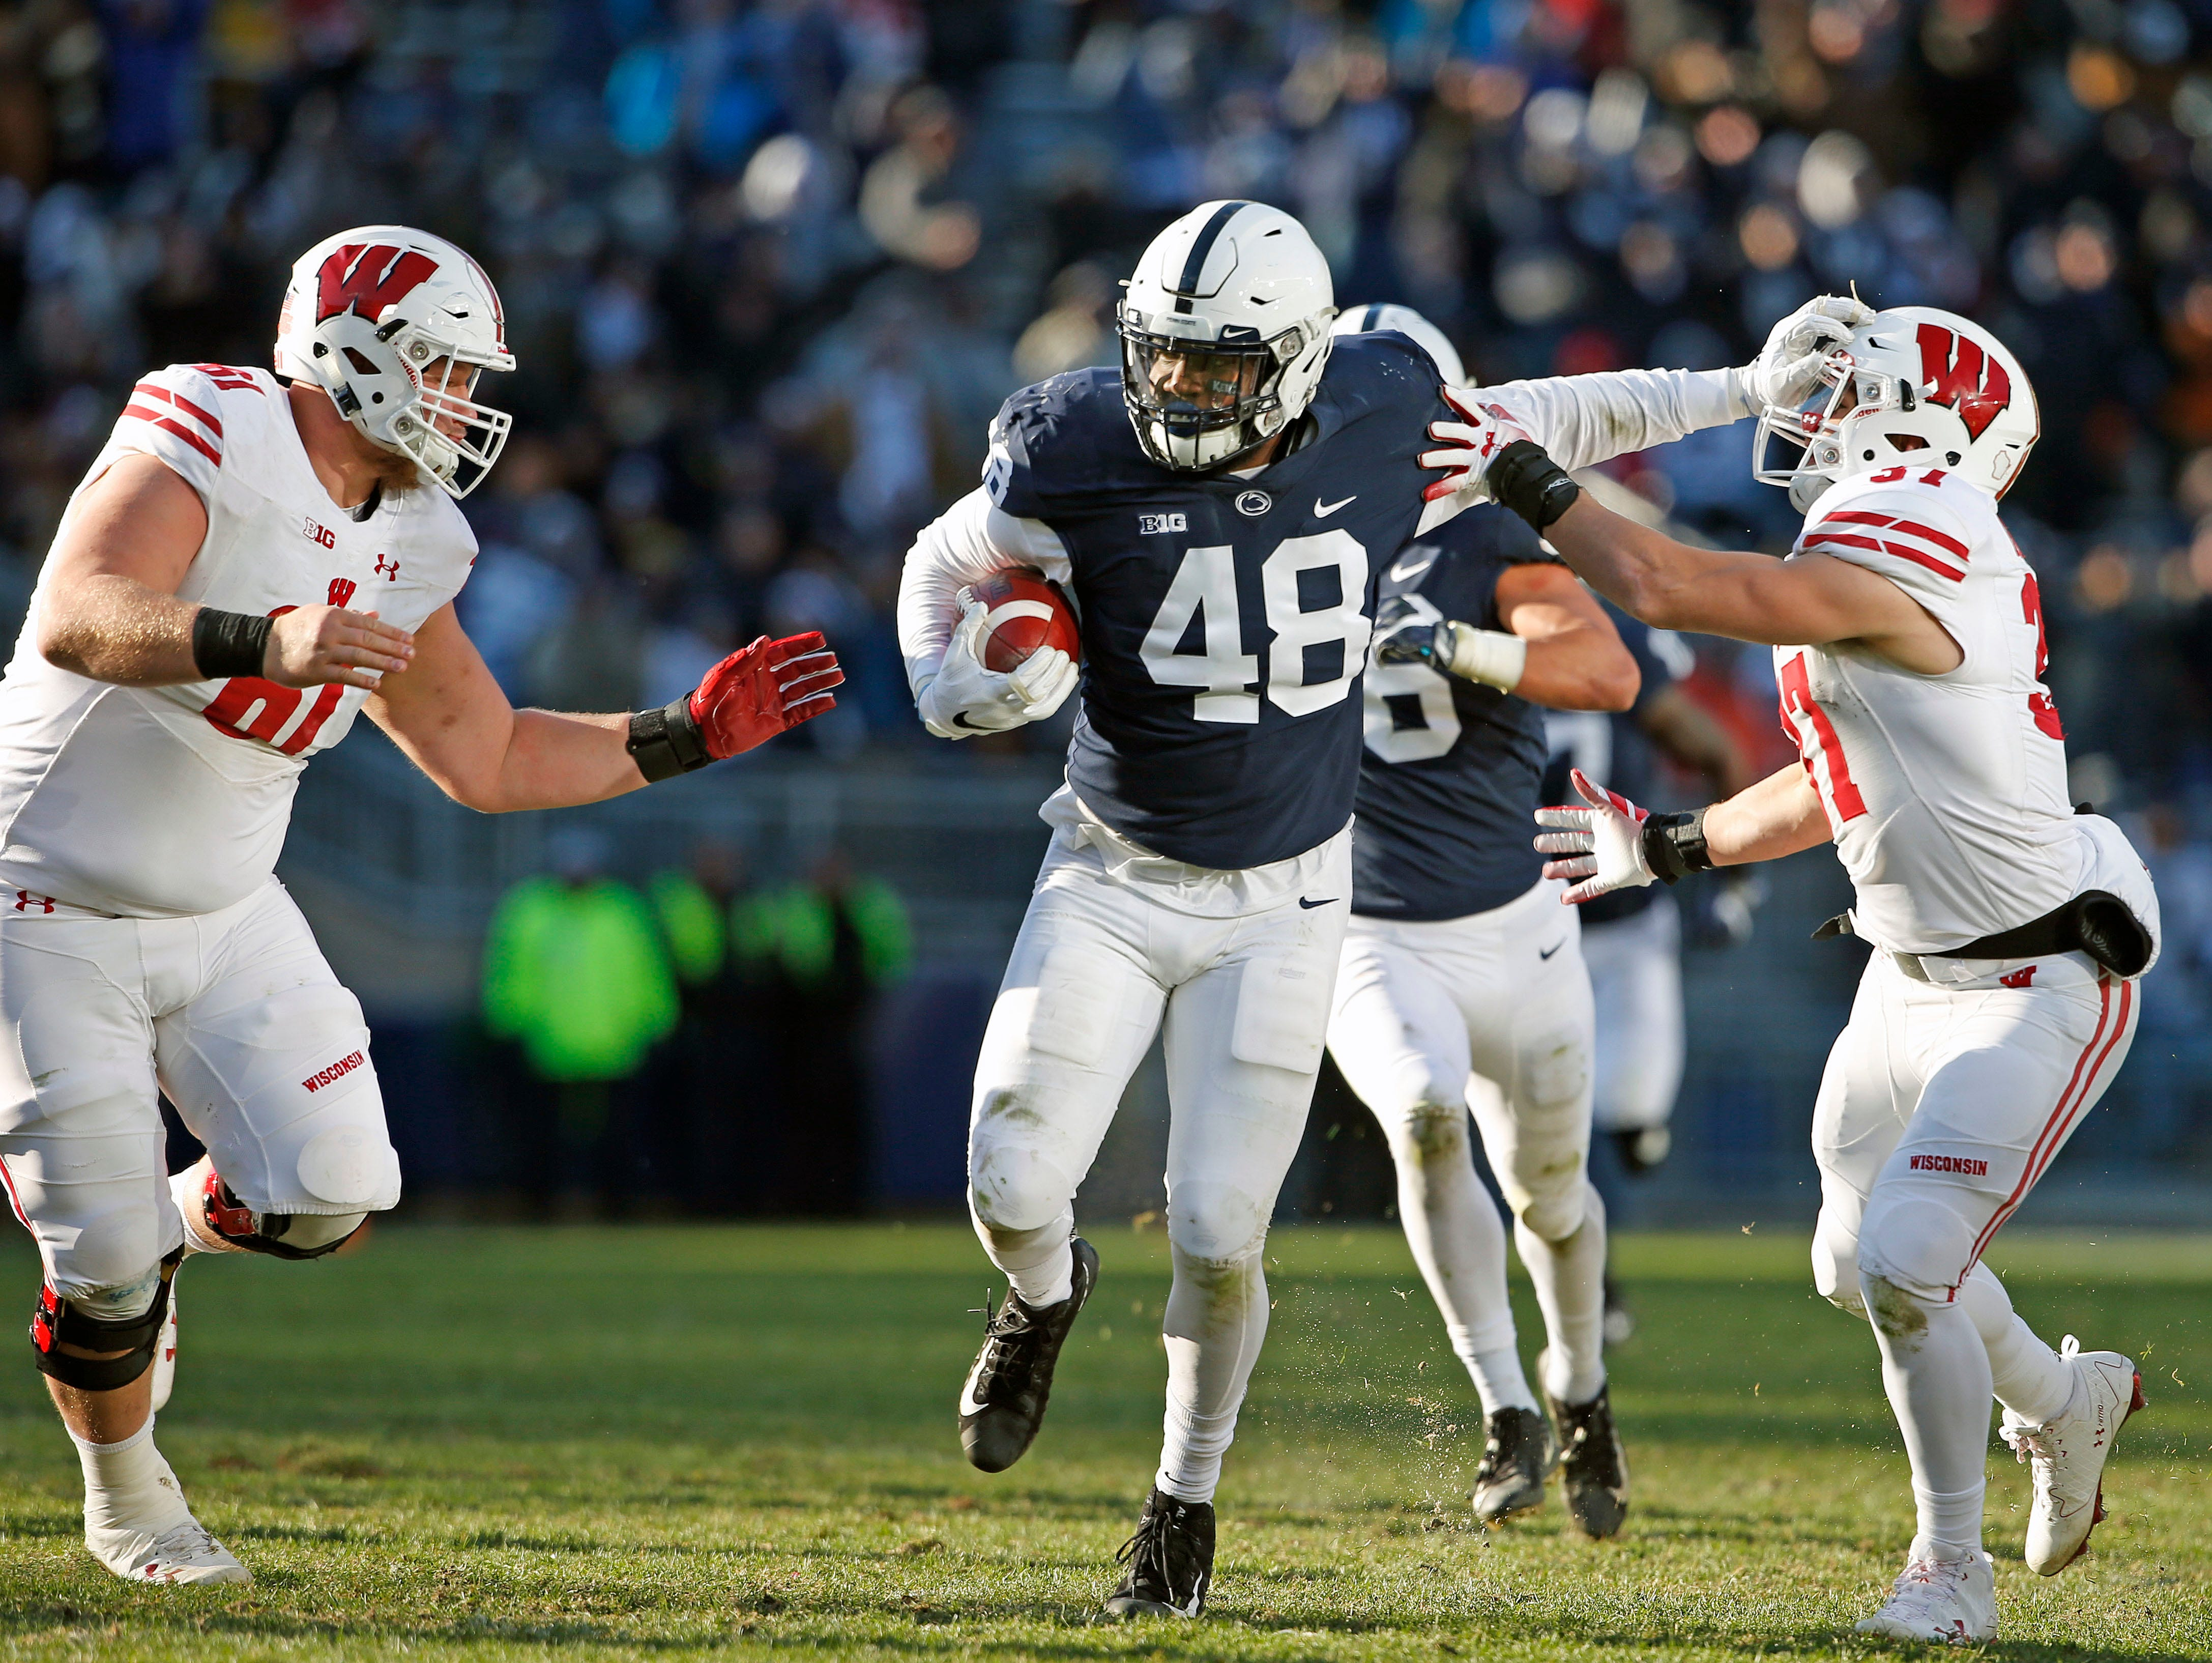 Penn State's Shareef Miller (48) stiff arms Wisconsin's Garrett Groshek (37) after intercepting a pass during the second half of an NCAA college football game in State College, Pa., Saturday, Nov. 10, 2018. Penn State won 22-10.